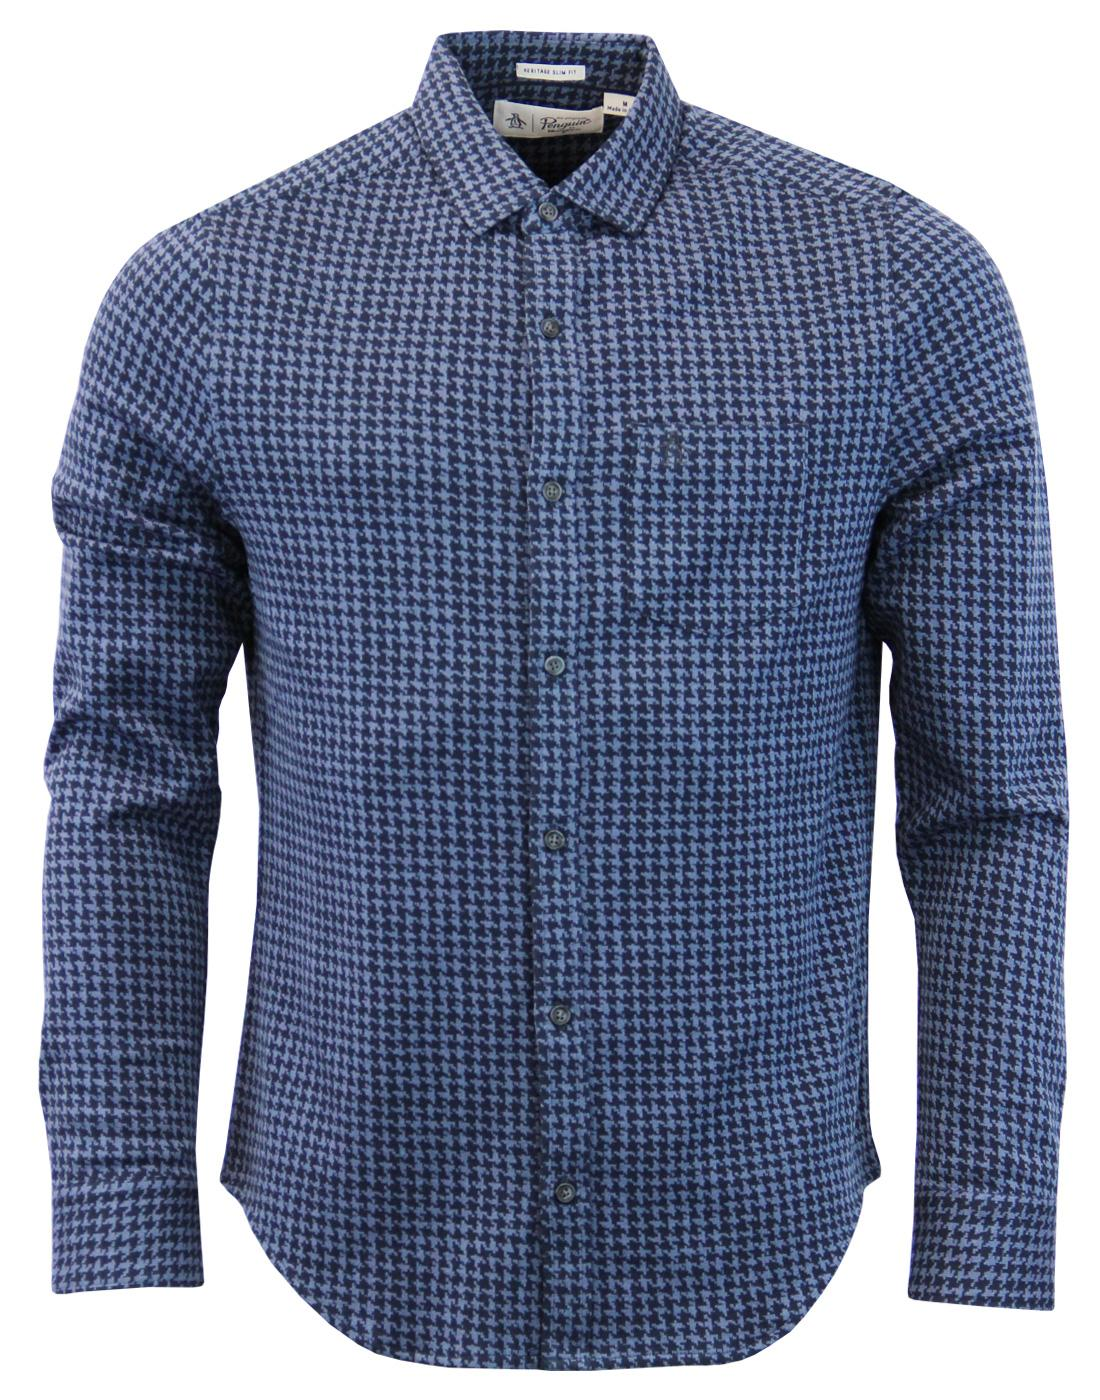 ORIGINAL PENGUIN Retro Mod Dogtooth Check Shirt